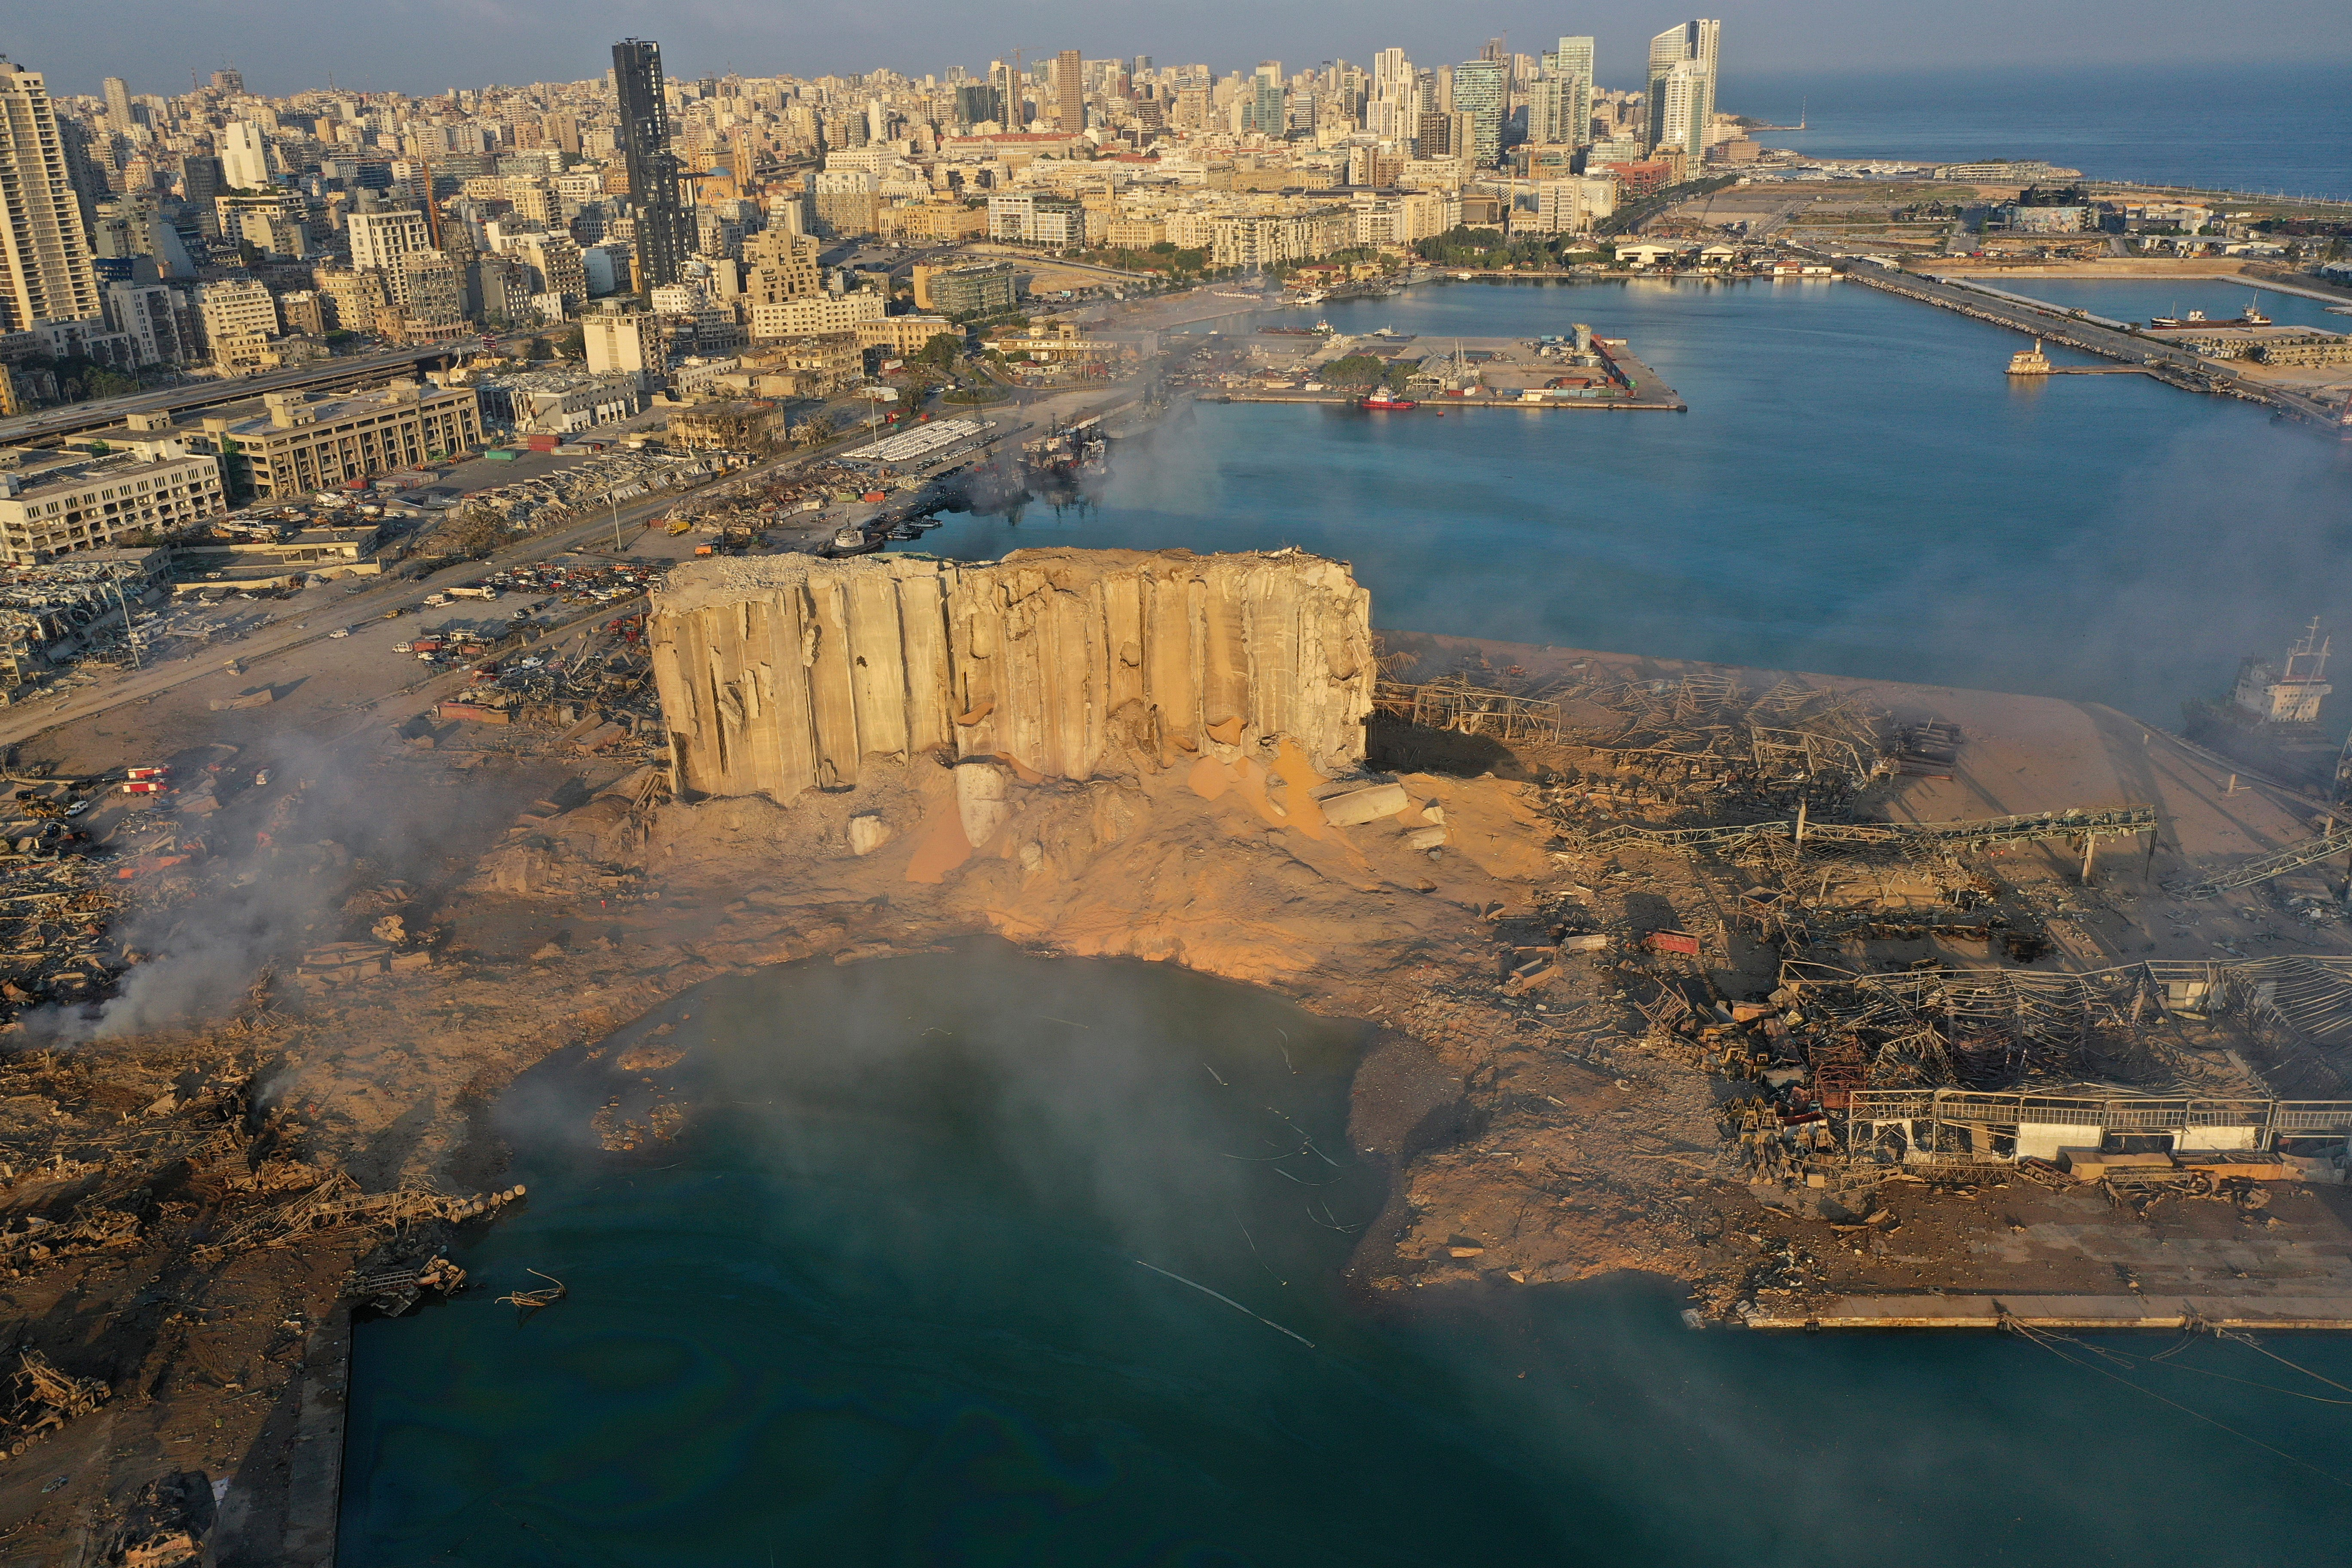 Lebanon president: Beirut explosion either due to negligence or missile, bomb